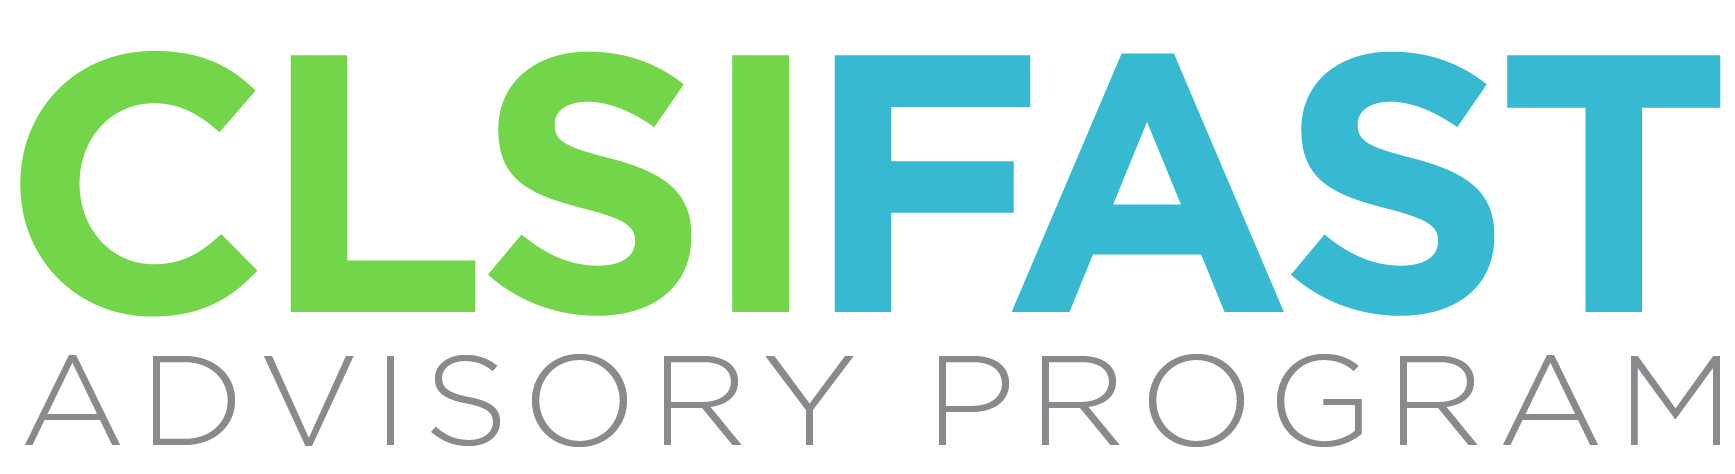 FAST_New Logo_102018.png